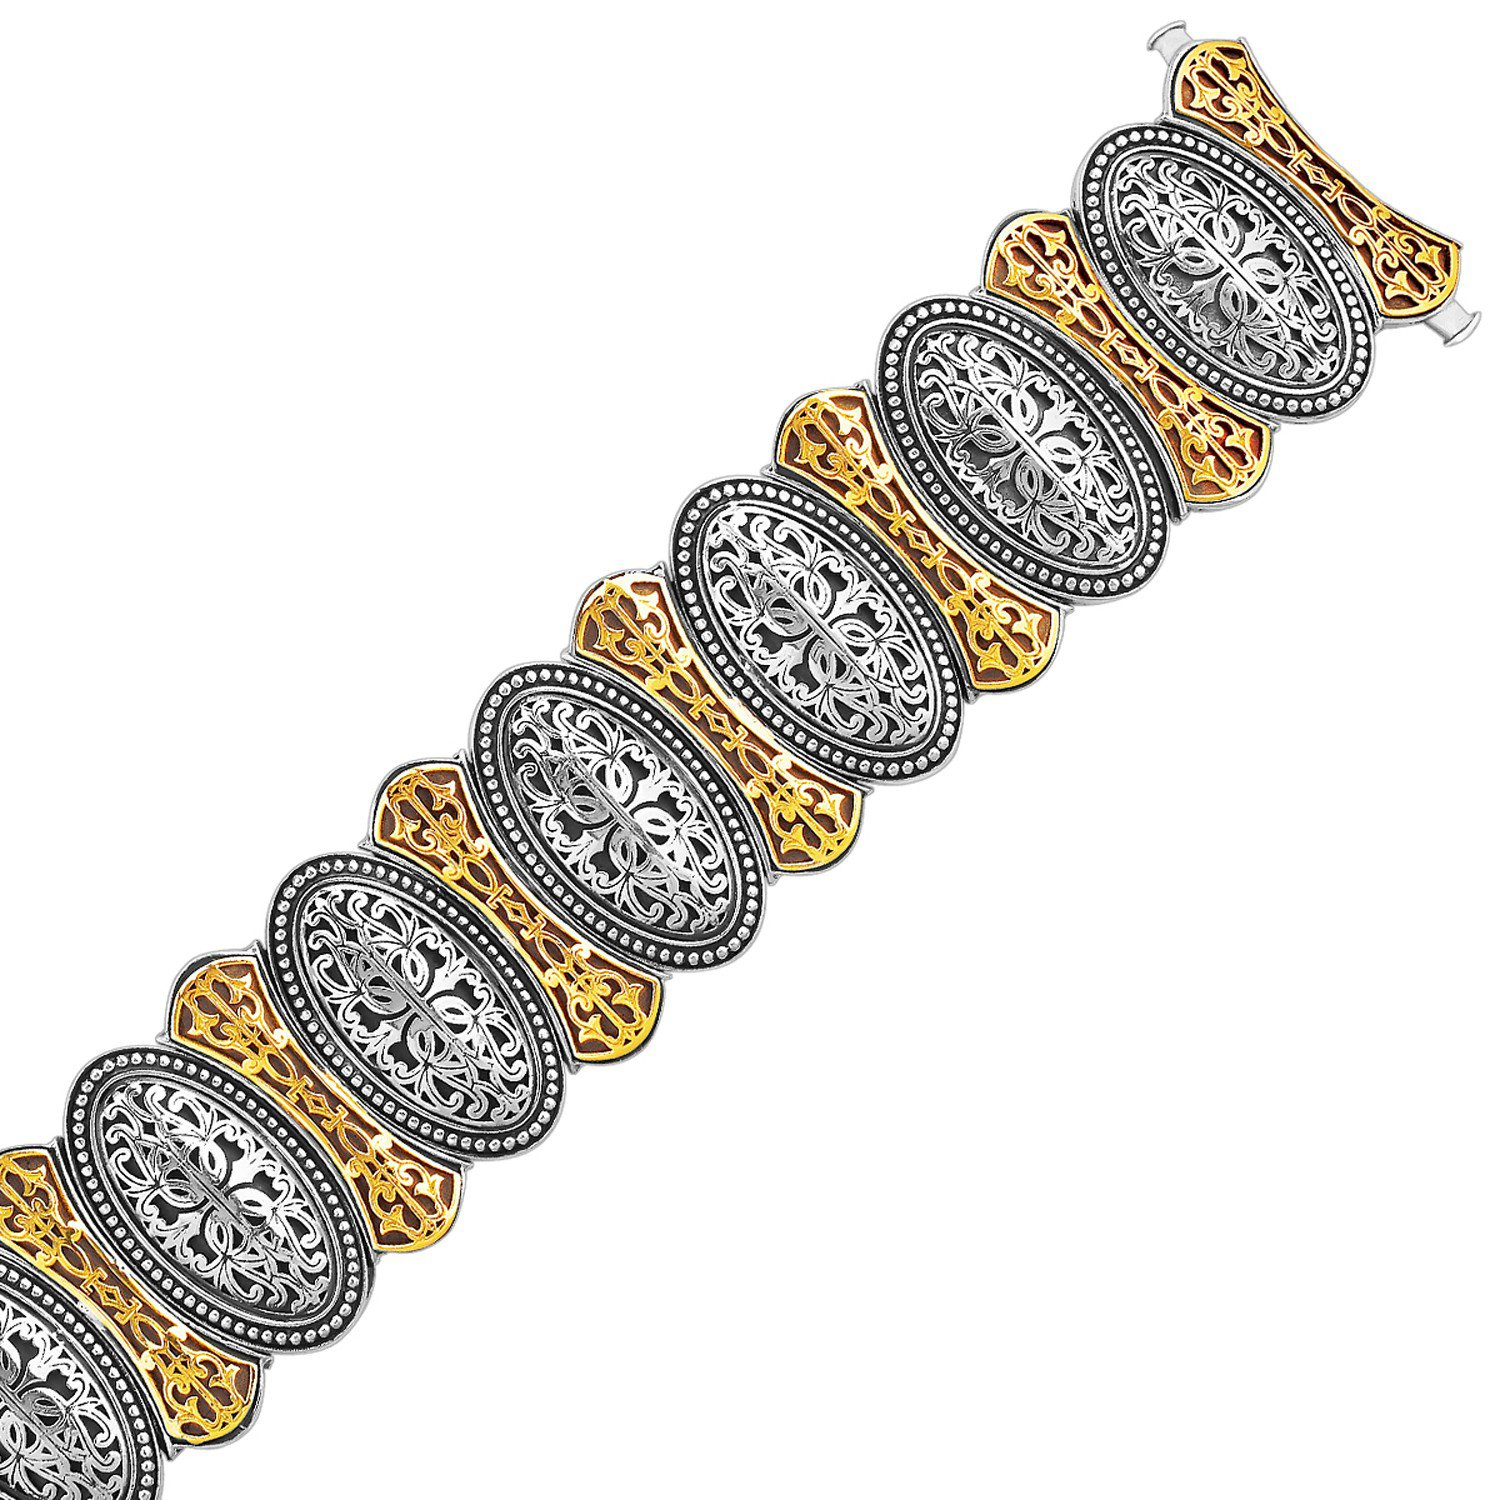 18K Yellow Gold 925 Sterling Silver Bracelet in an Oval Overlapping Motif 7.5 inches